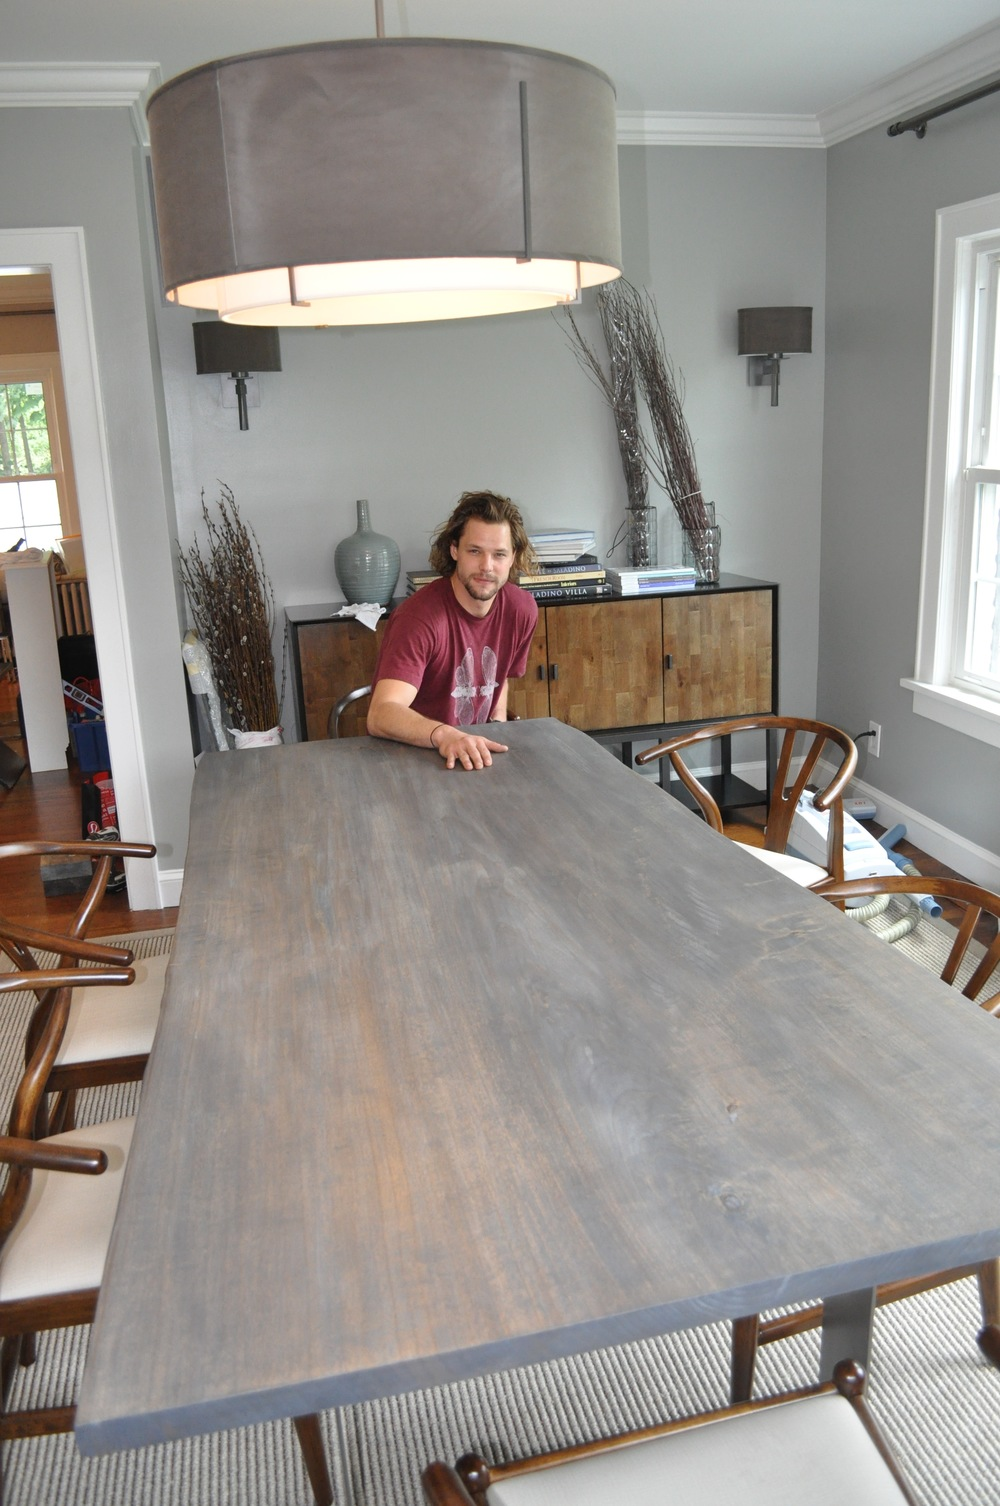 Mats Christéen and his exquisitely crafted custom-designed dining table